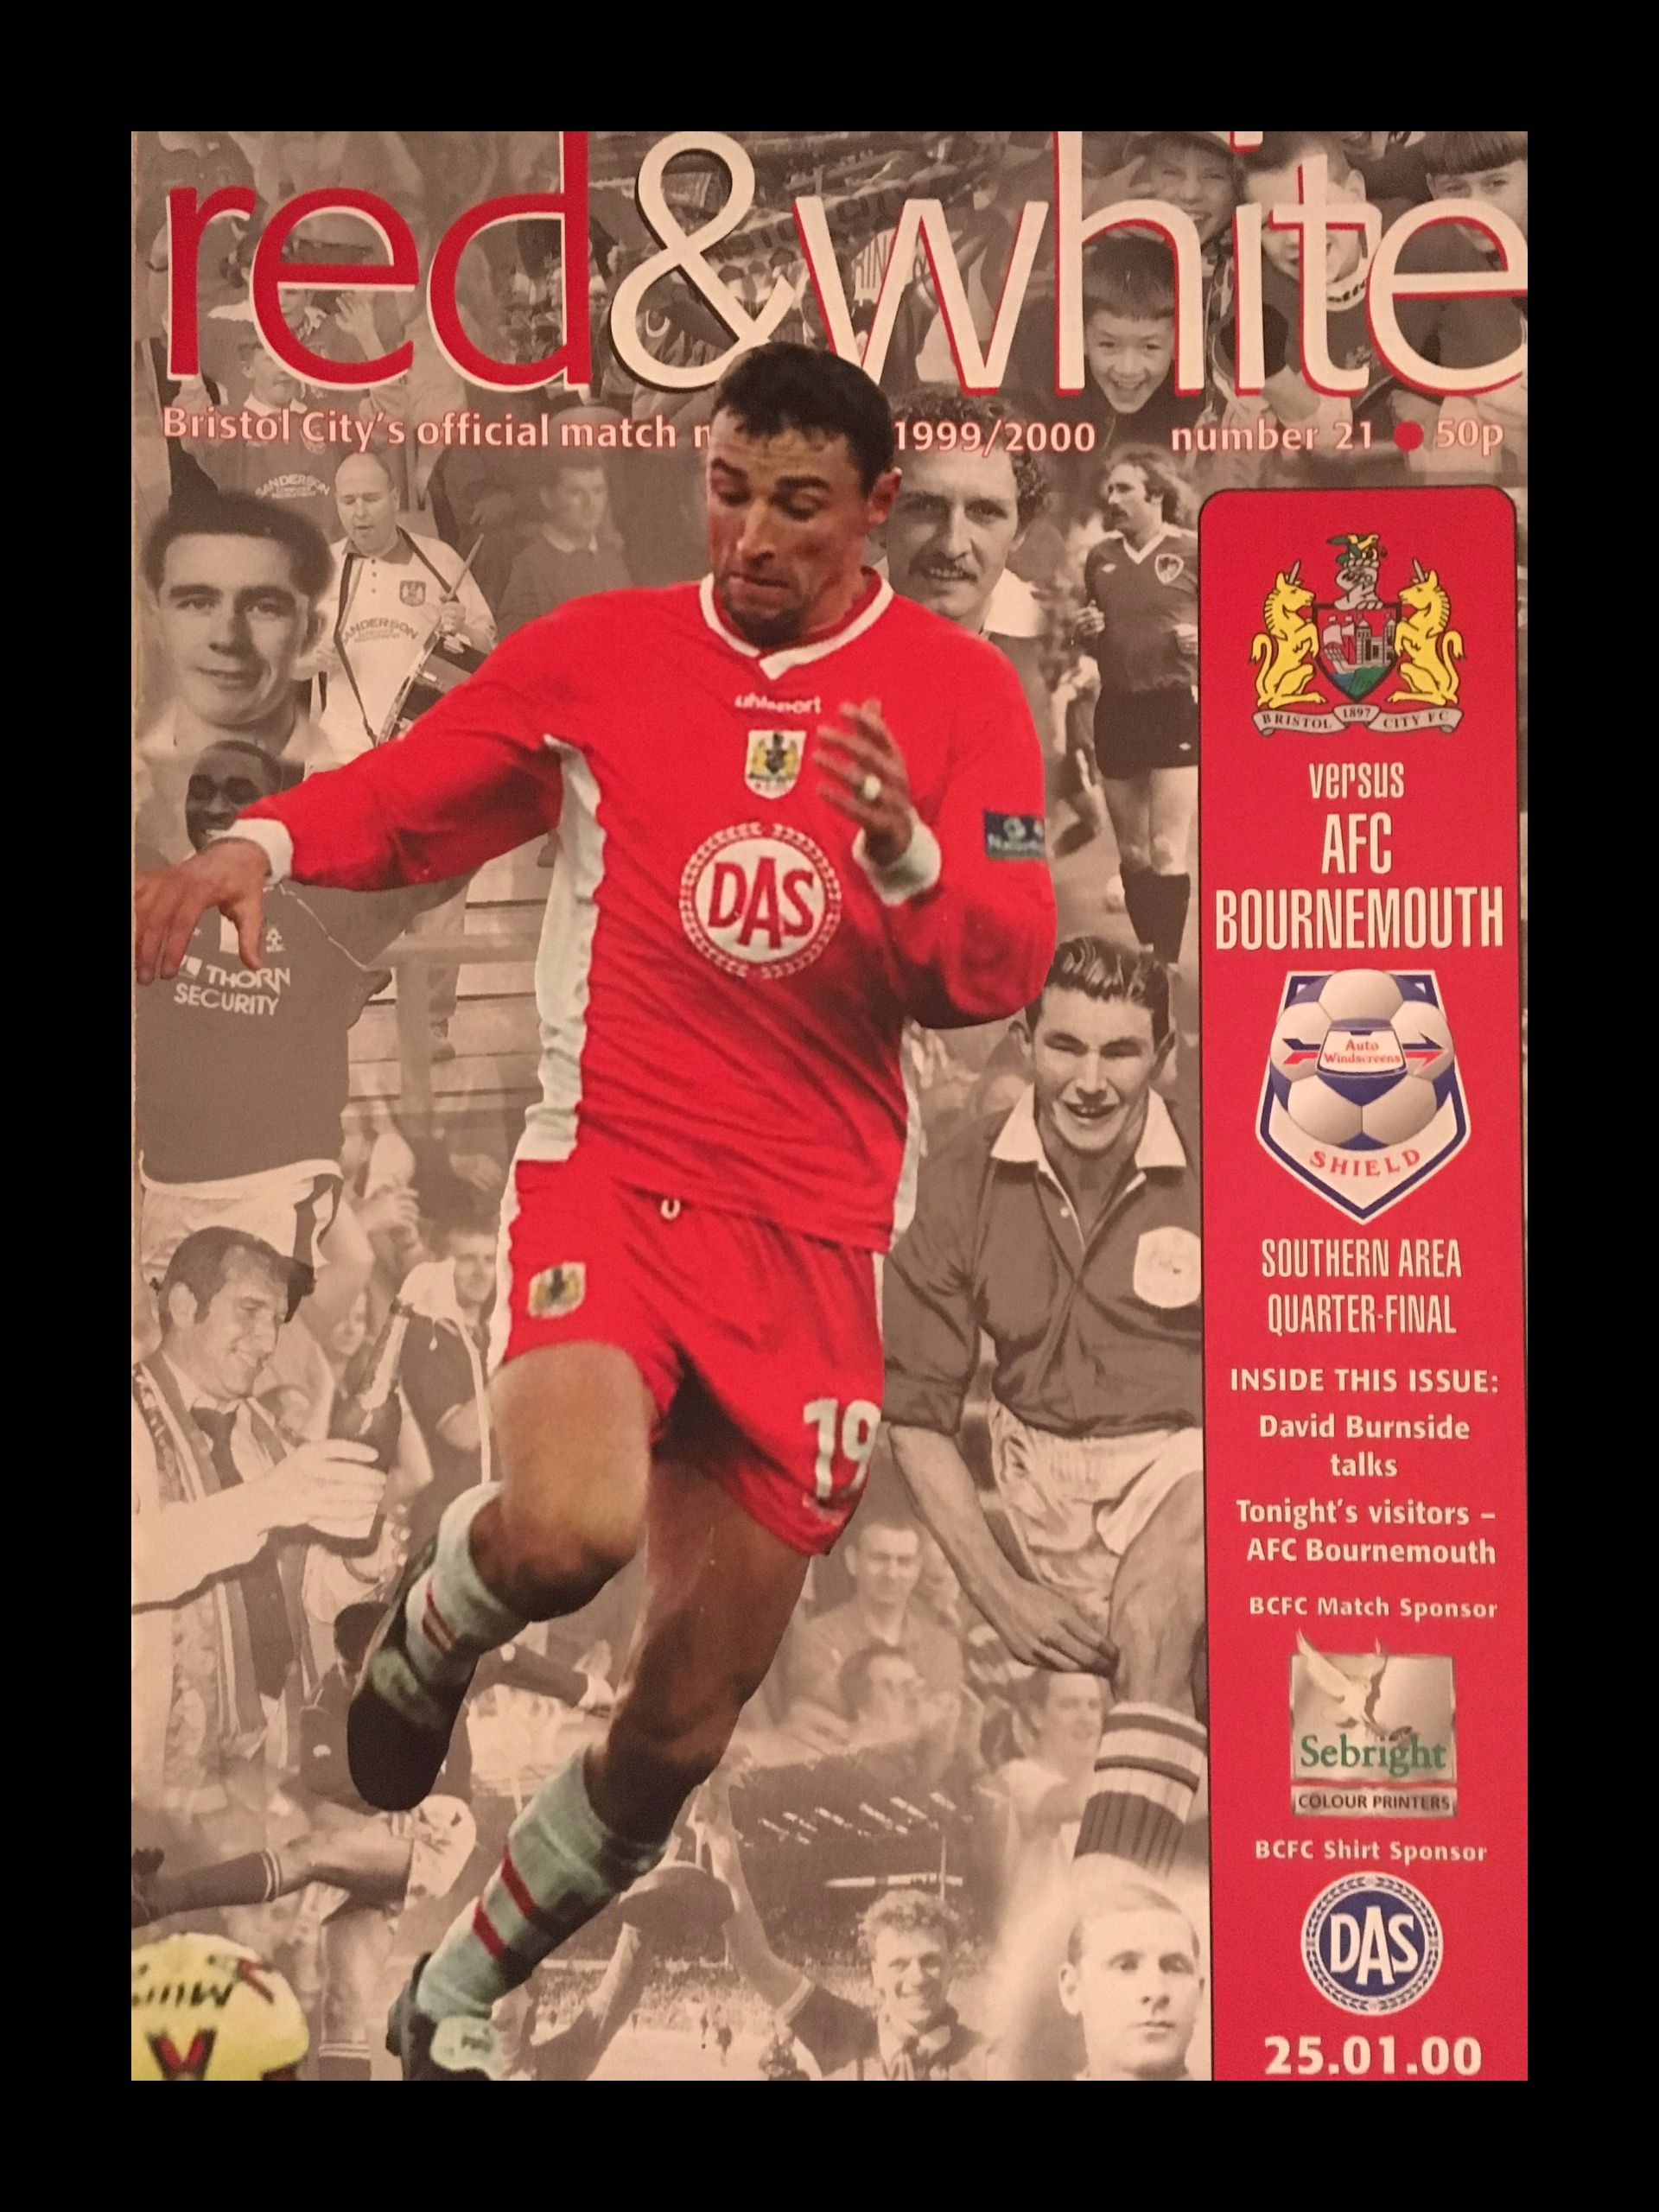 Bristol City v AFC Bournemouth 25-01-2000 Programme